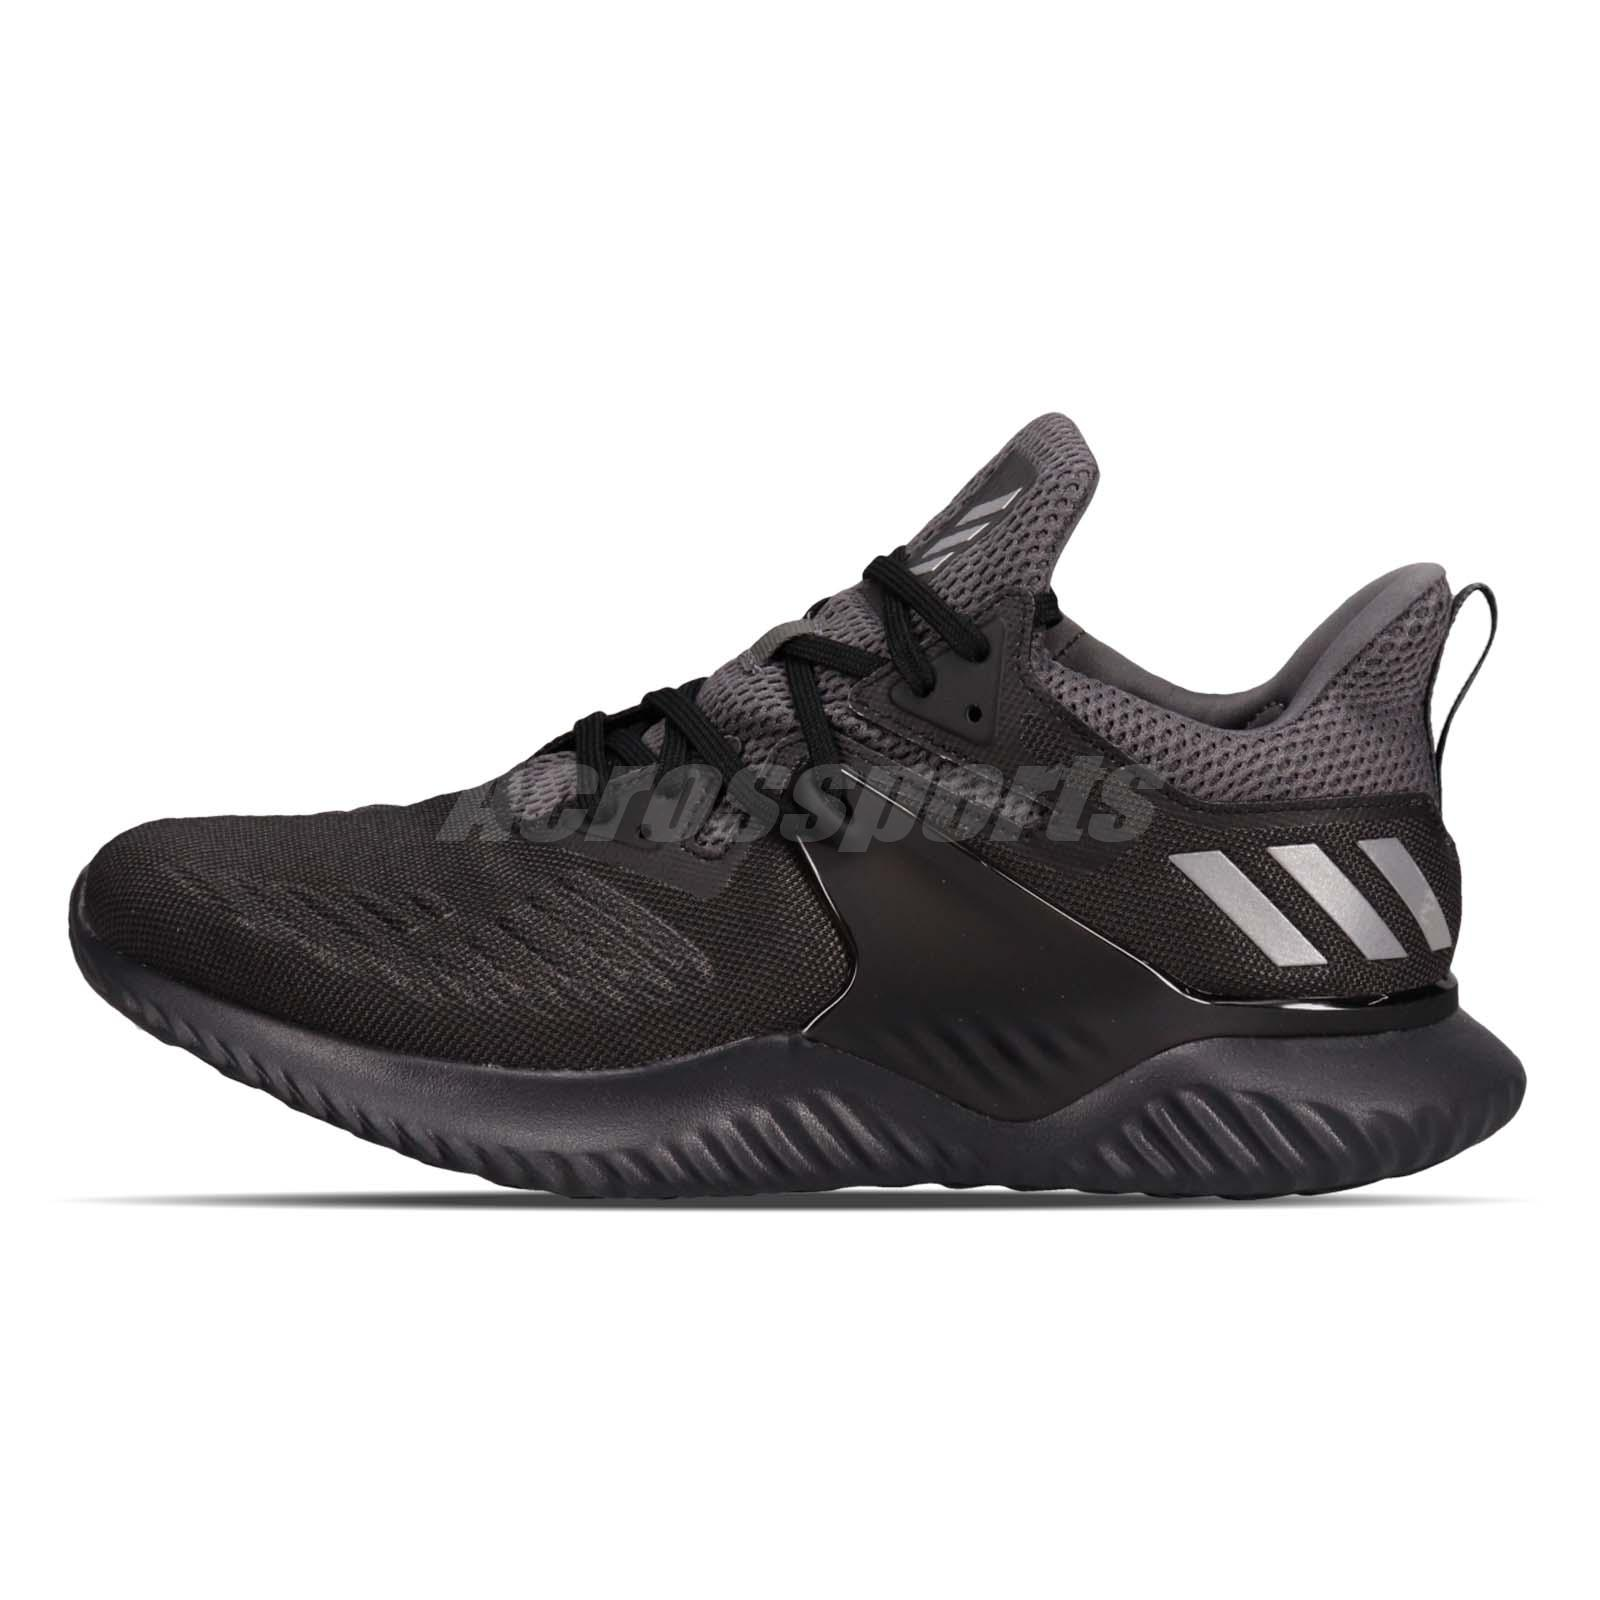 c2c5c39e0 adidas Alphabounce Beyond 2 M Black Silver Men Running Shoes Sneakers BB7568